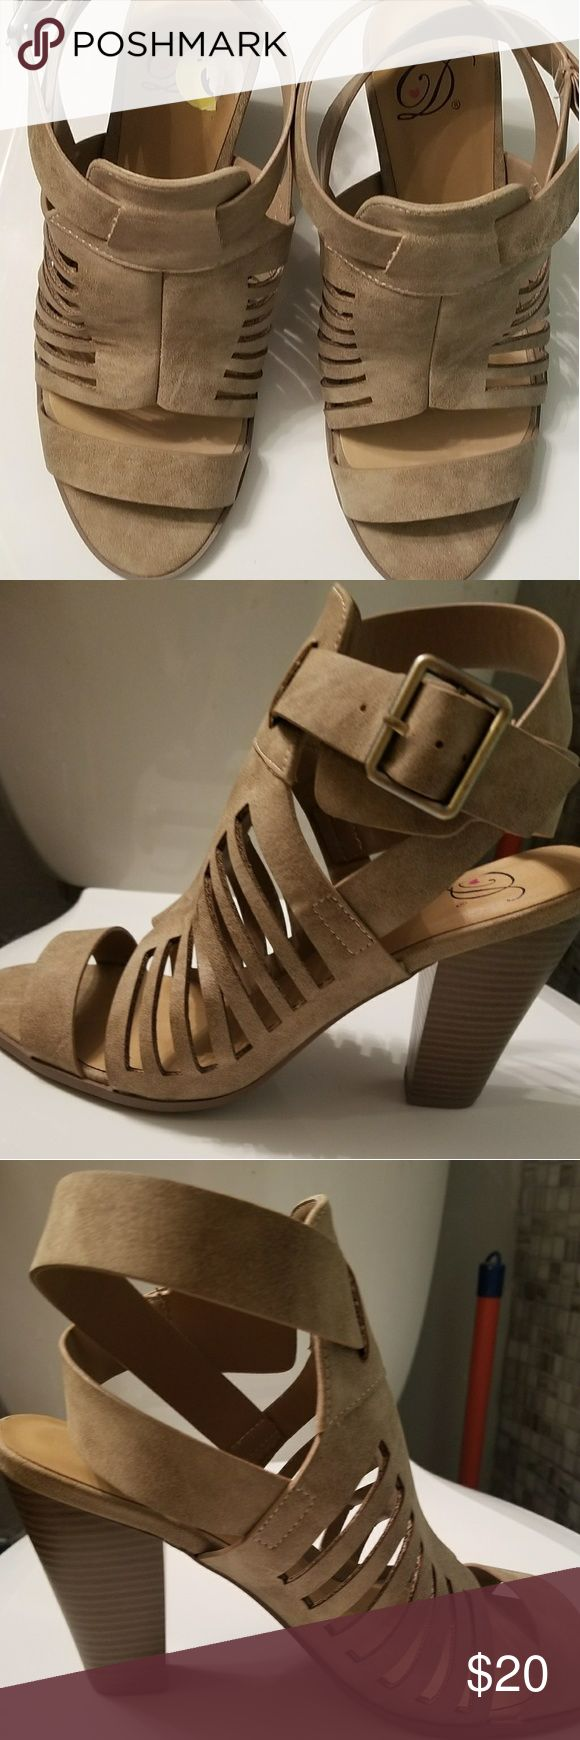 Beige Strappy Heeled Sandals Beige and velour Strappy sandals practically brand new worn maybe once or twice in my home size 9 Shoes Heels